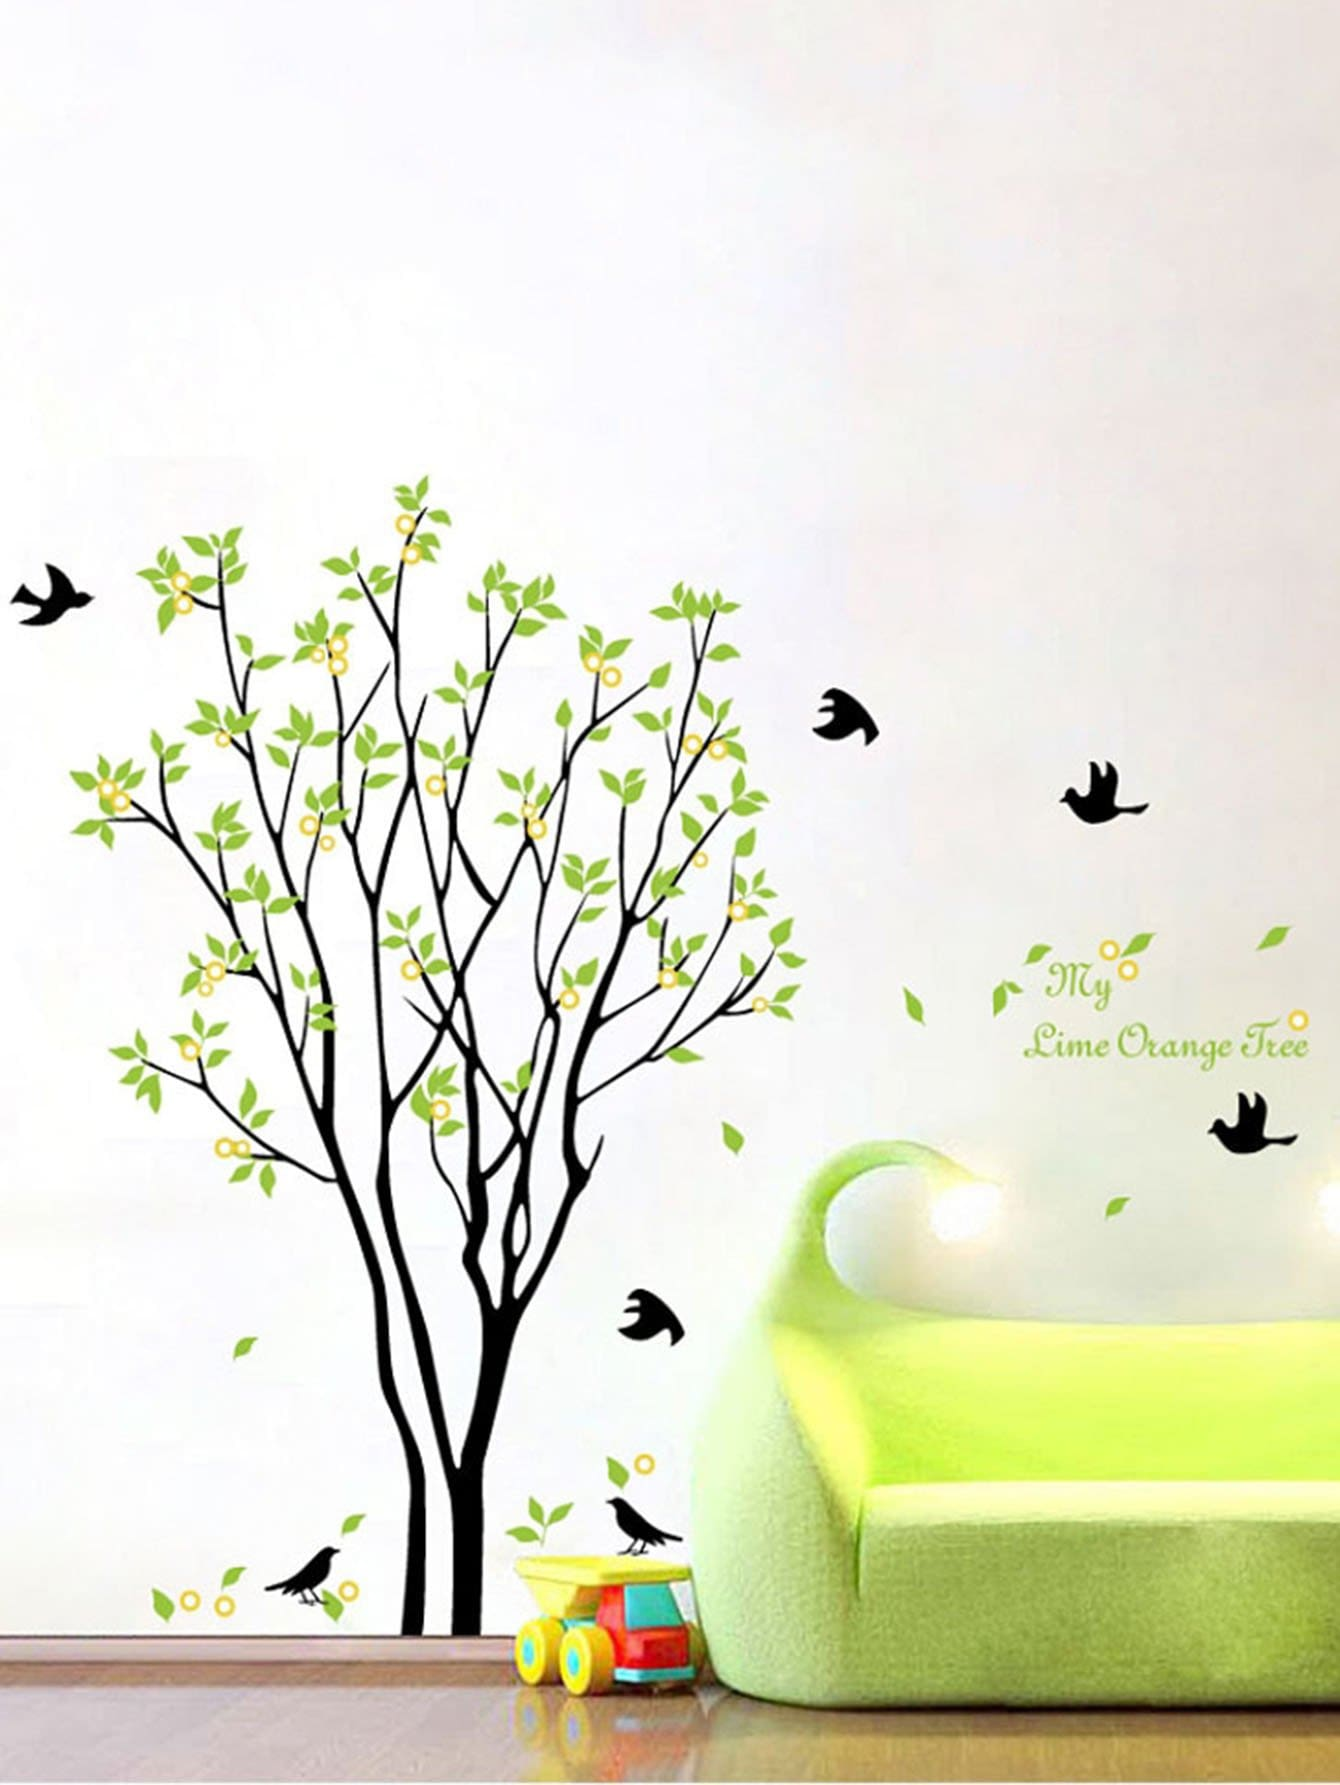 Tree & Bird Wall Decal family wall quote removable wall stickers home decal art mural